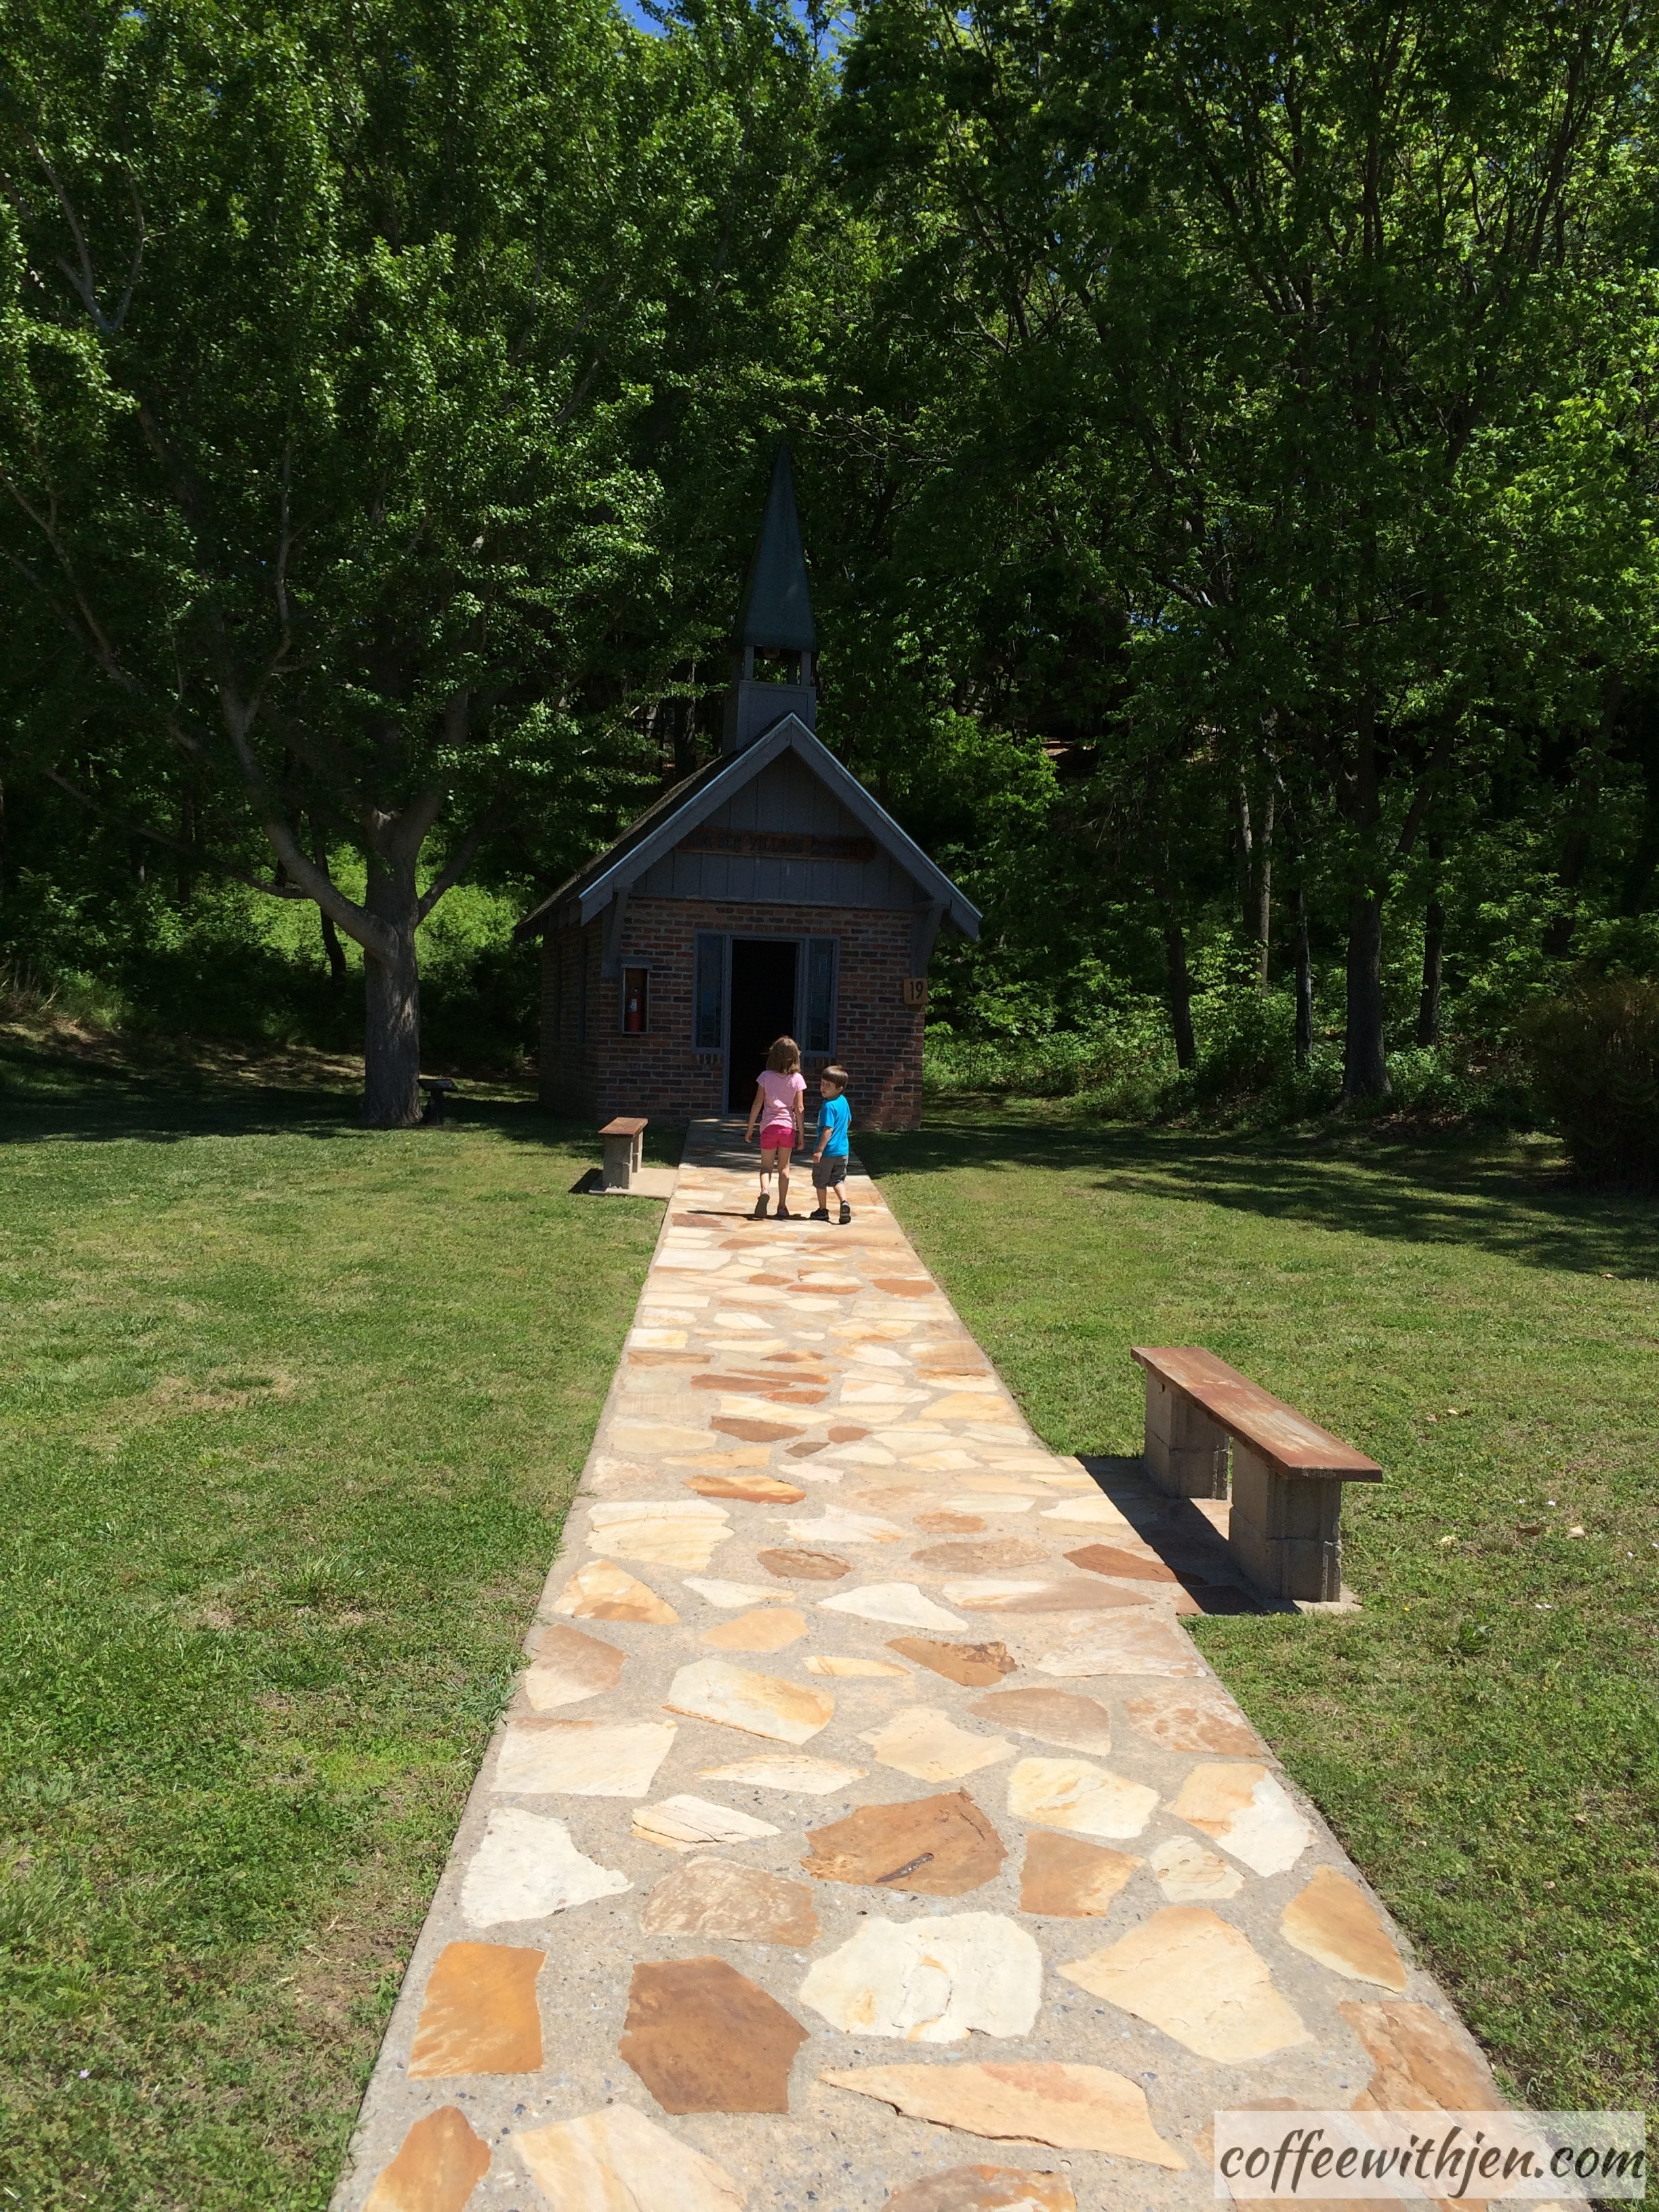 This little chapel was the first building on the property.  Mrs. Jones thought it would be nice to have a church here.